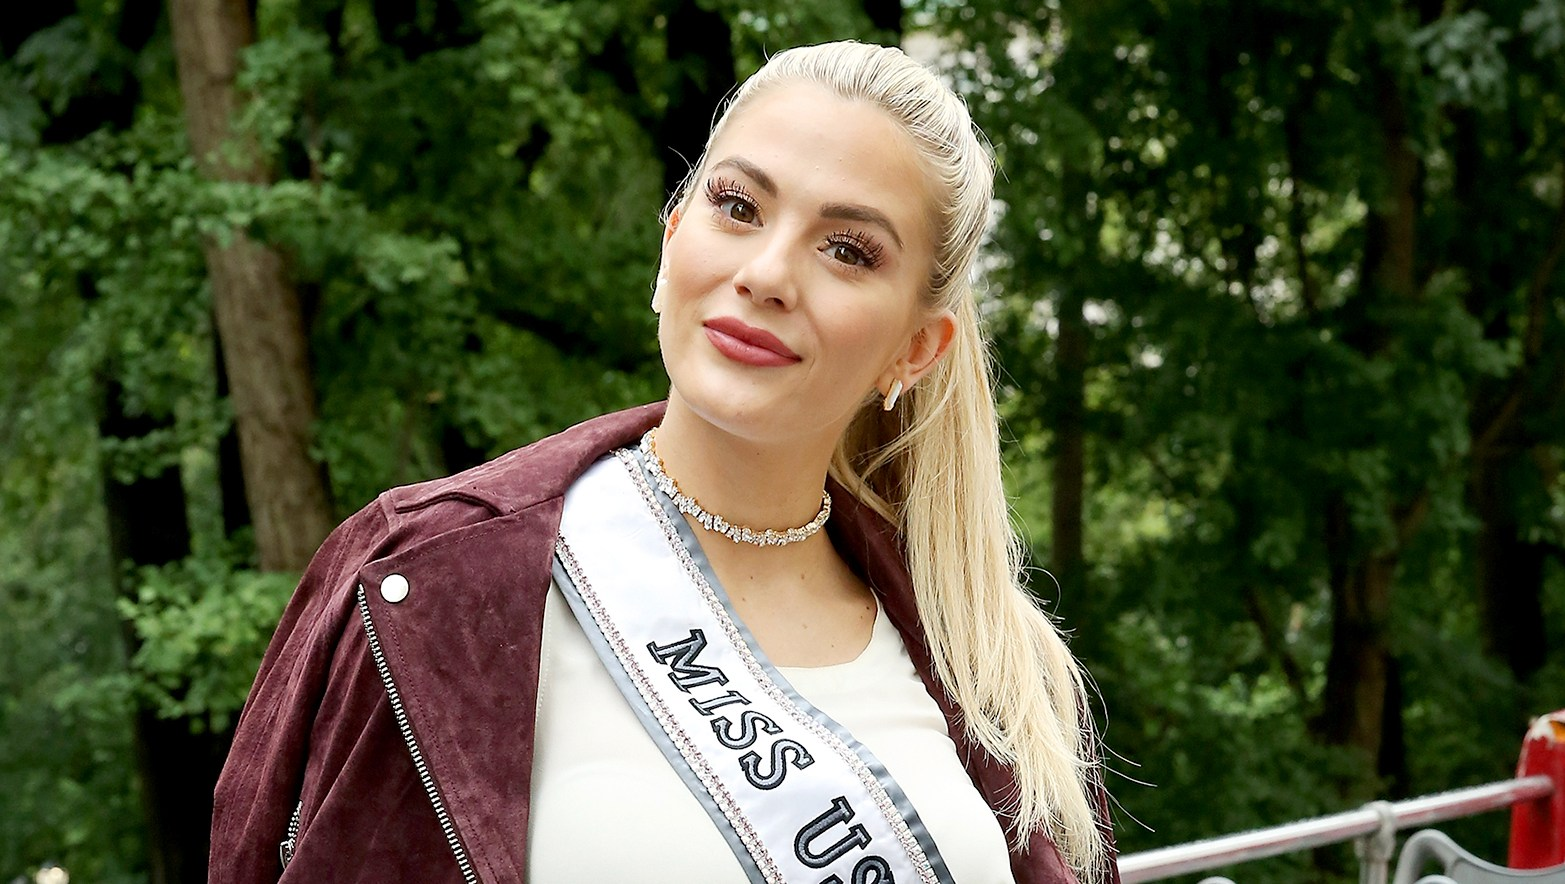 Miss-USA-Sarah-Rose-Summers-Slammed-for-Mocking-Non-English-Speaking-Contestants